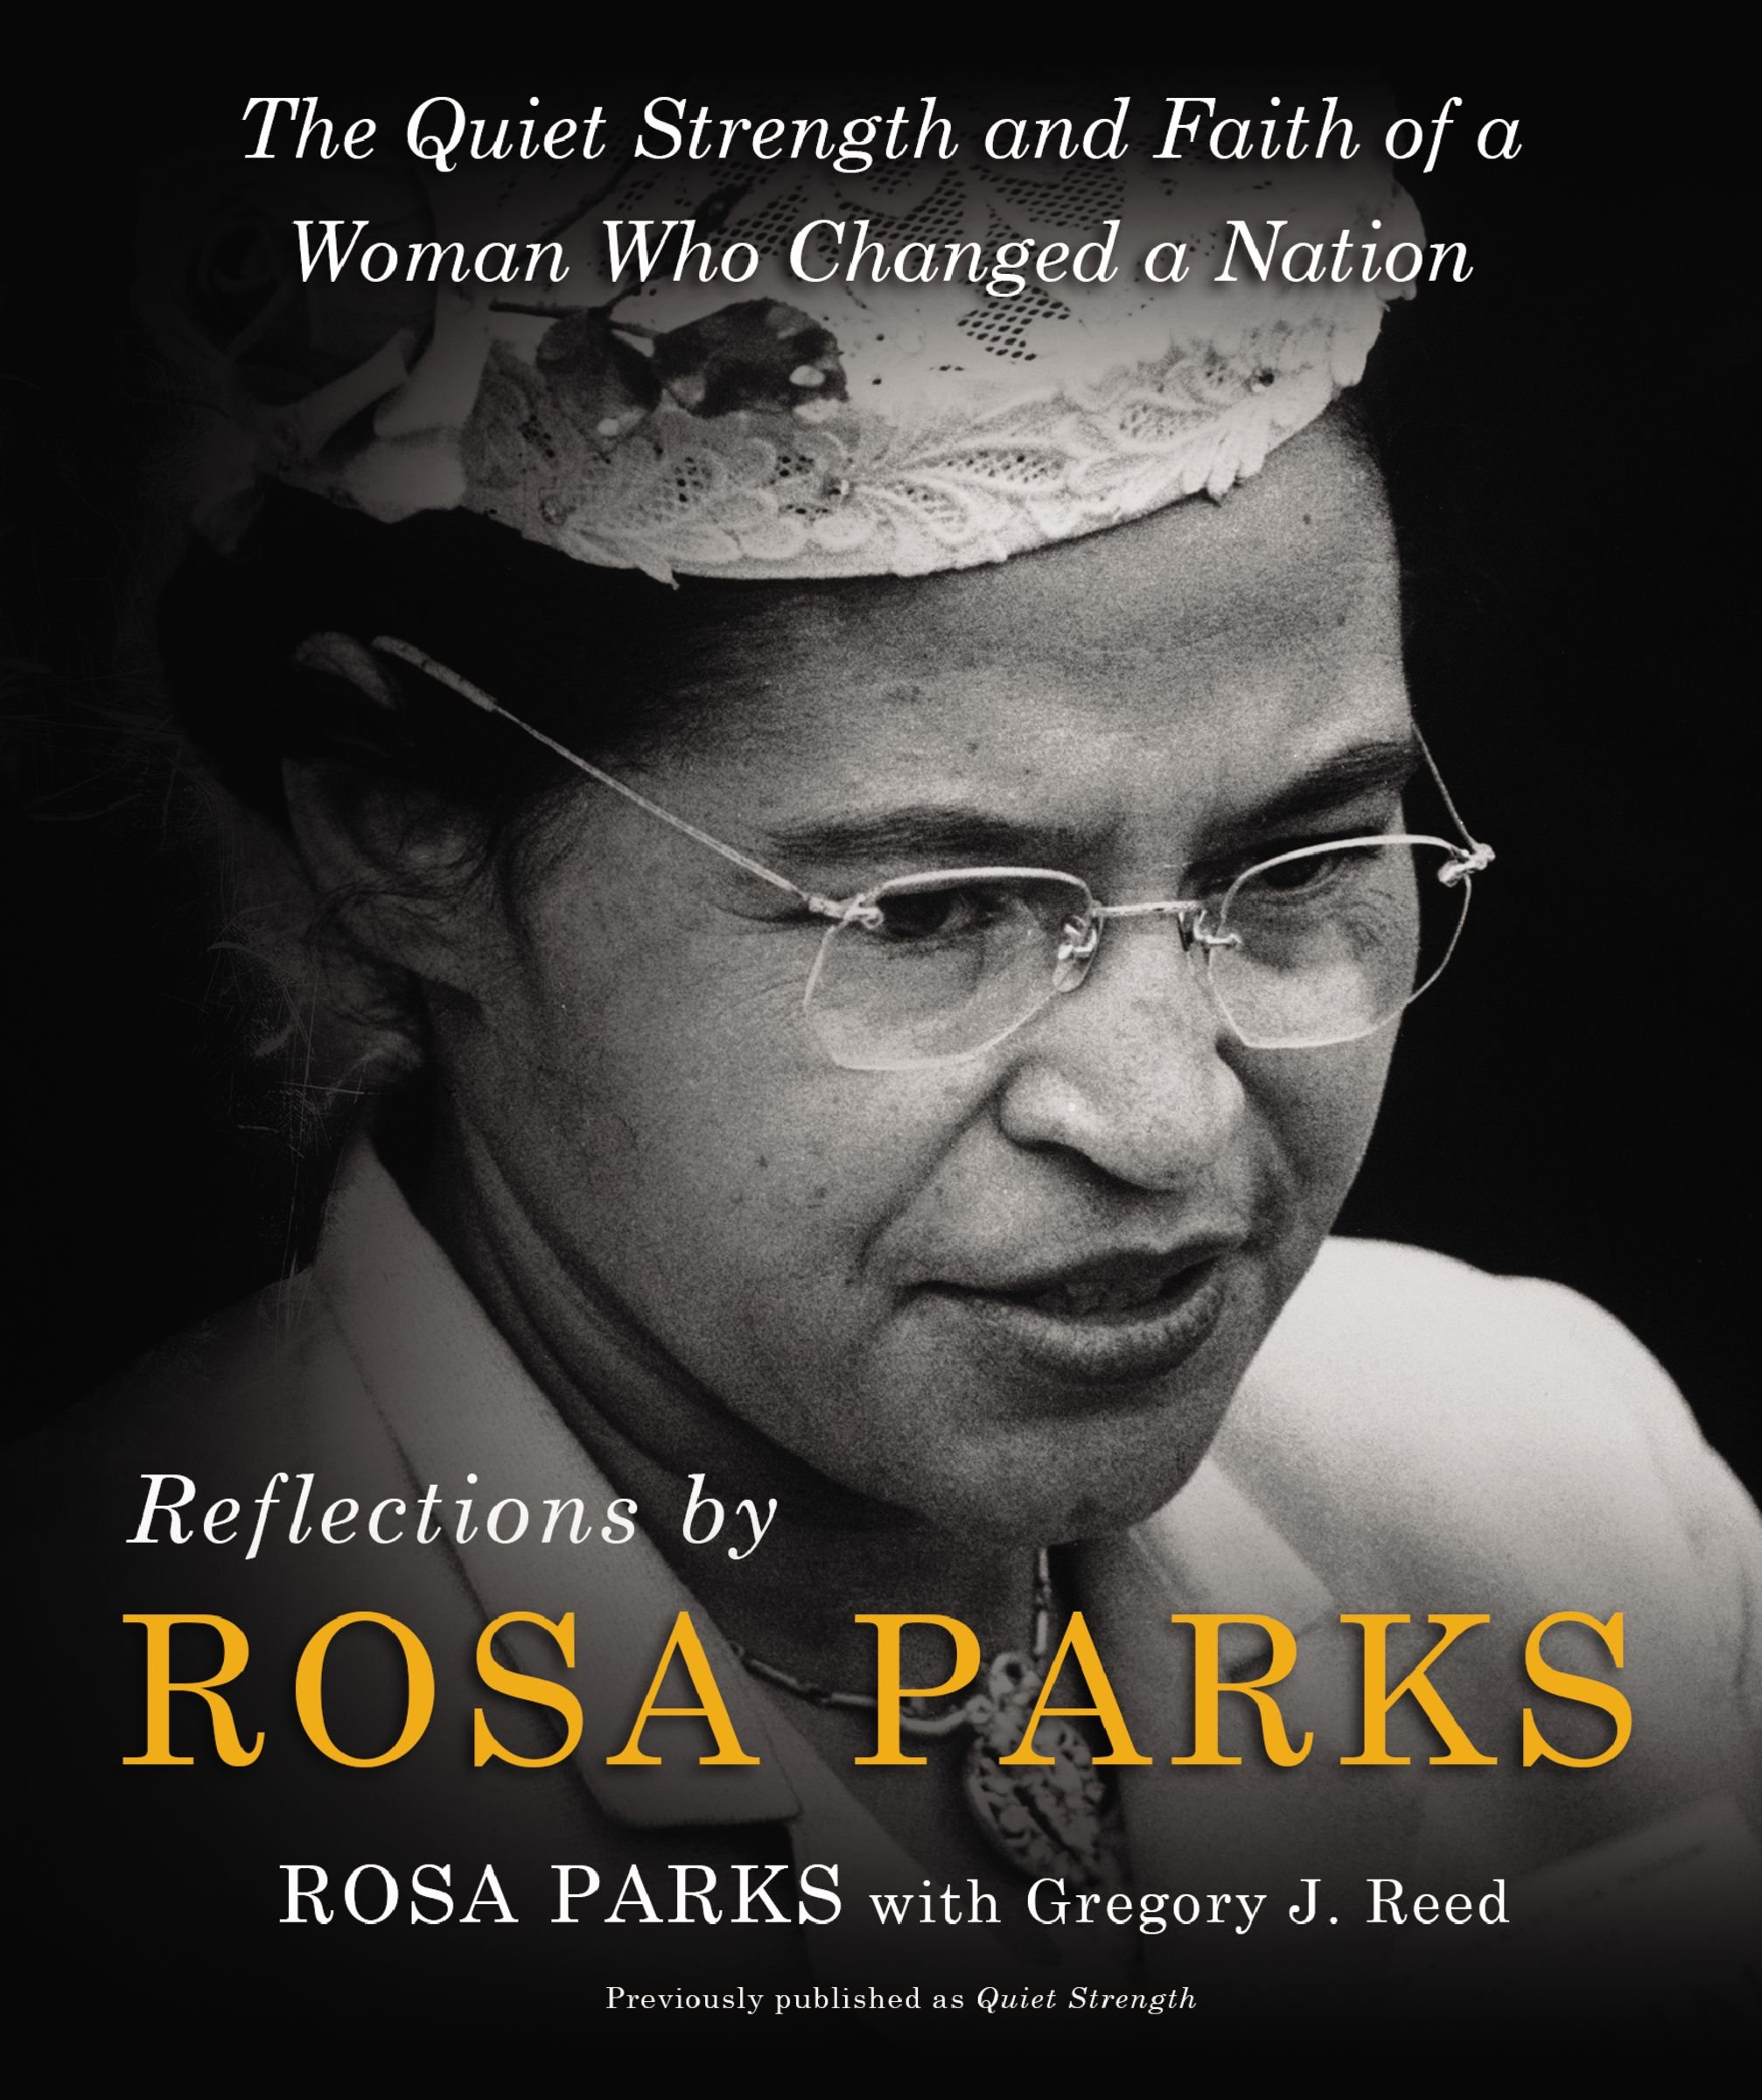 Reflections By Rosa Parks  The Quiet Strength And Faith Of A Woman Who Changed A Nation